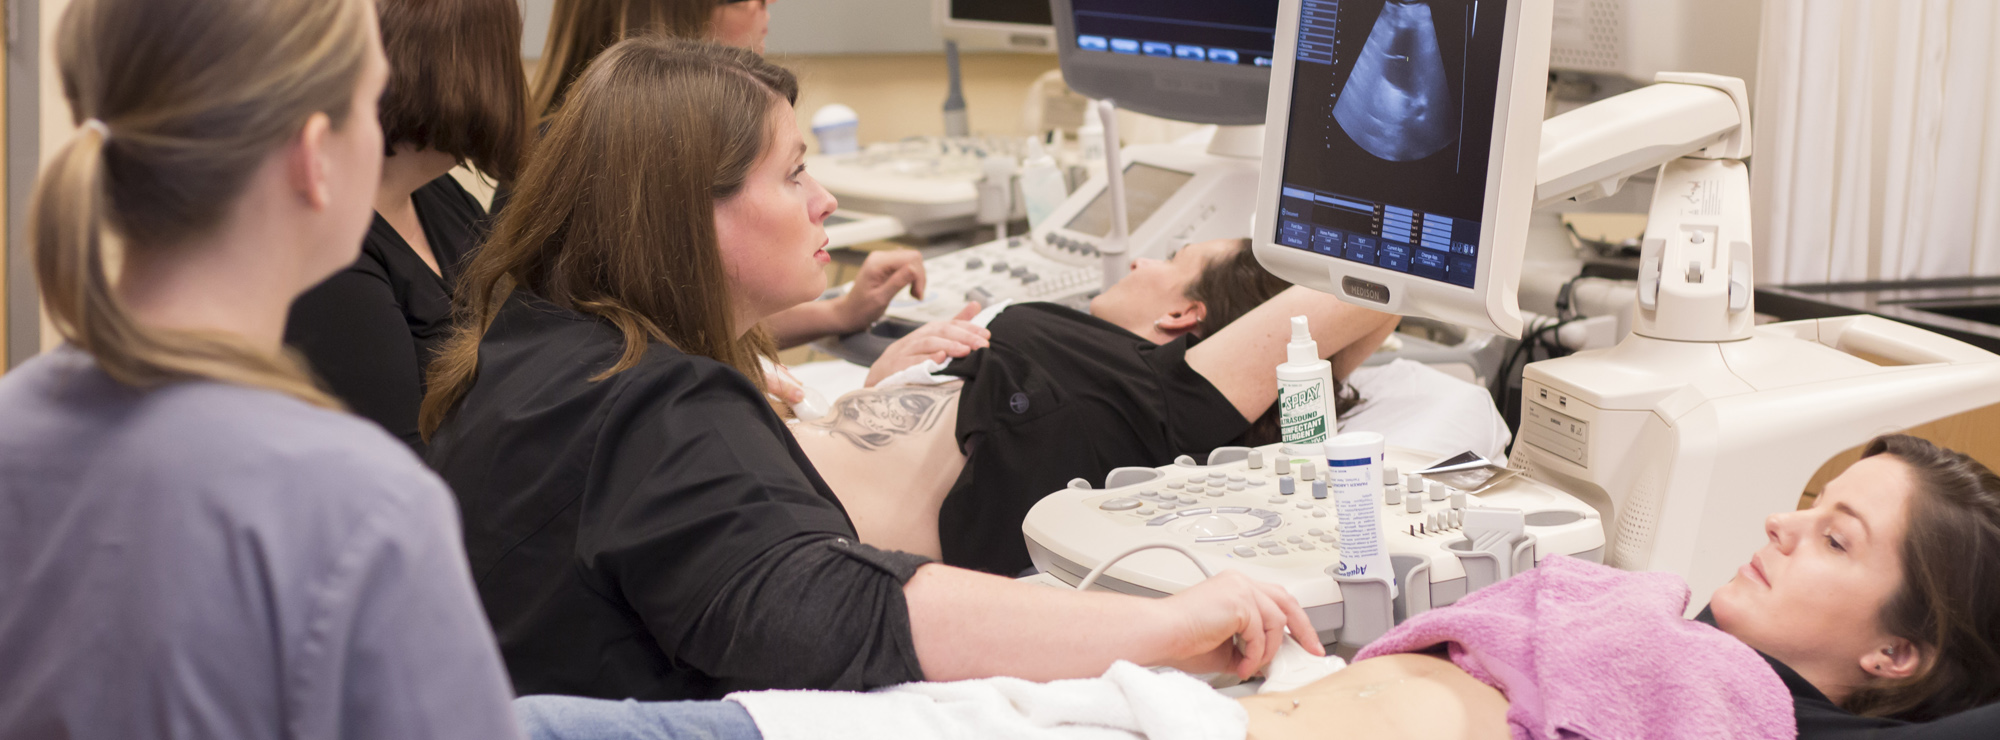 Sonography students in lab